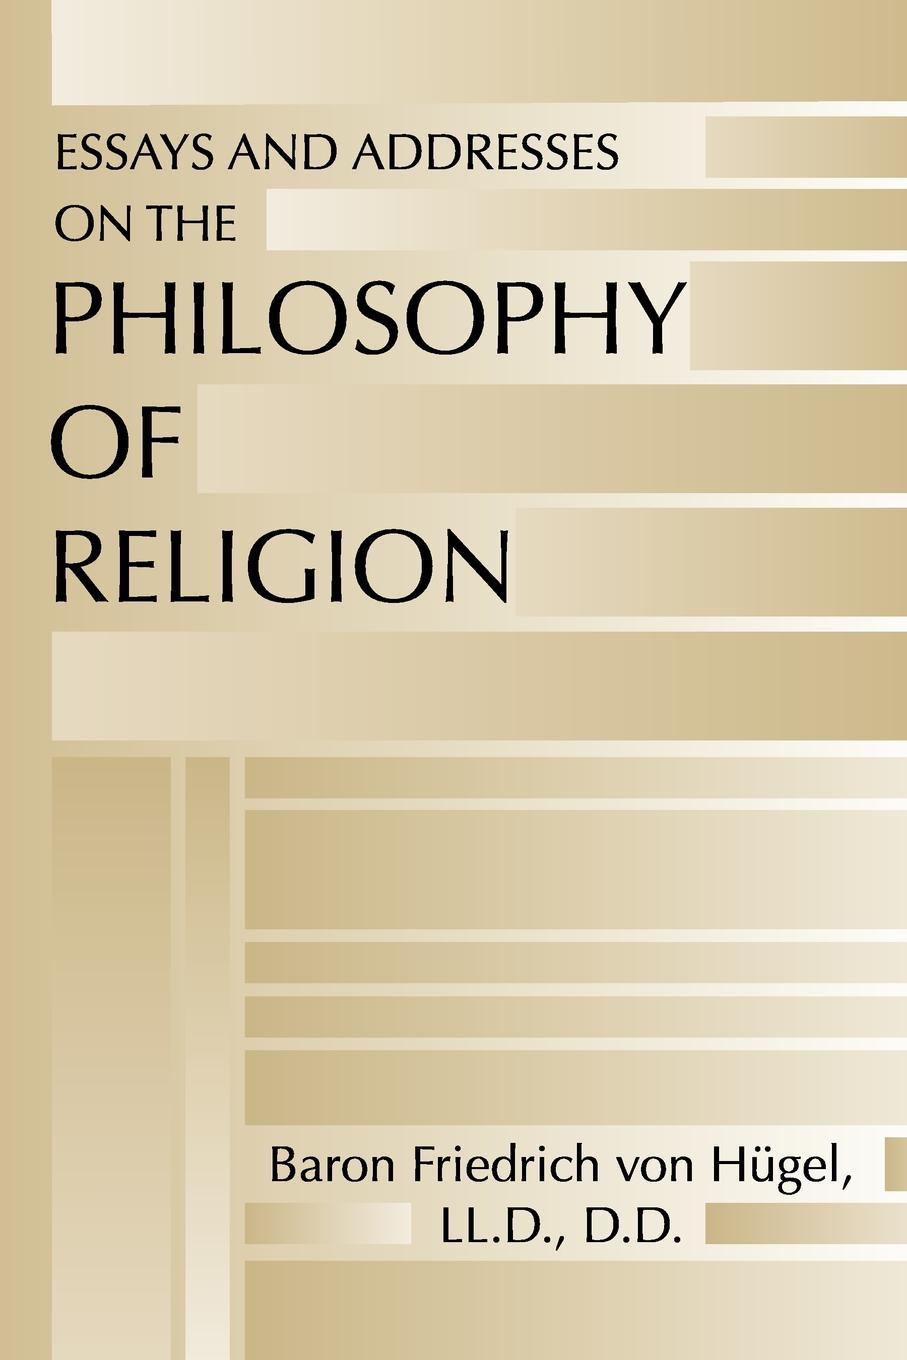 Friedrich Von Hugel Essays and Addresses on the Philosophy of Religion